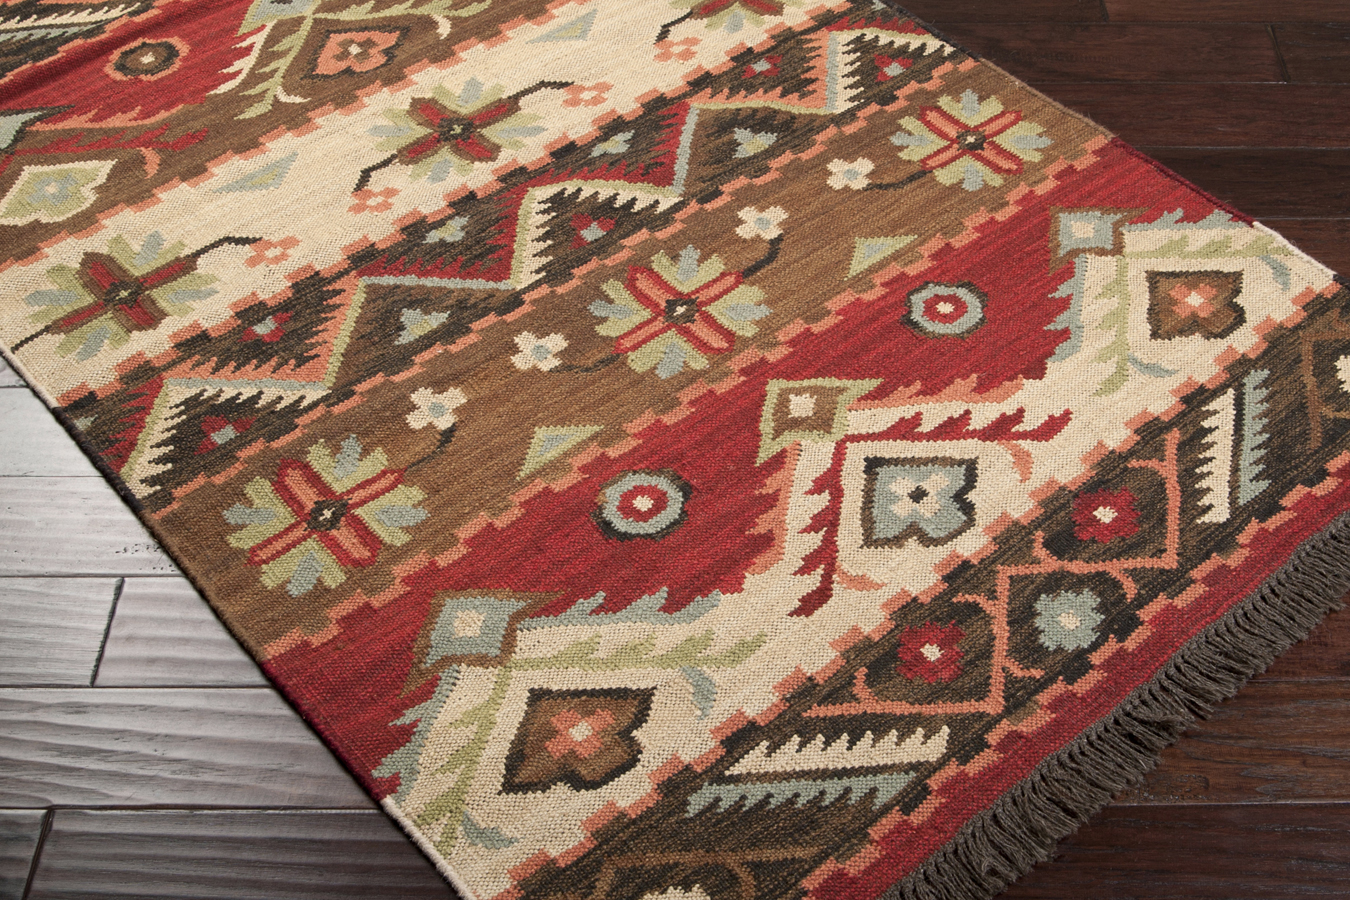 Jewel Tone JT - 8 Rug by Surya